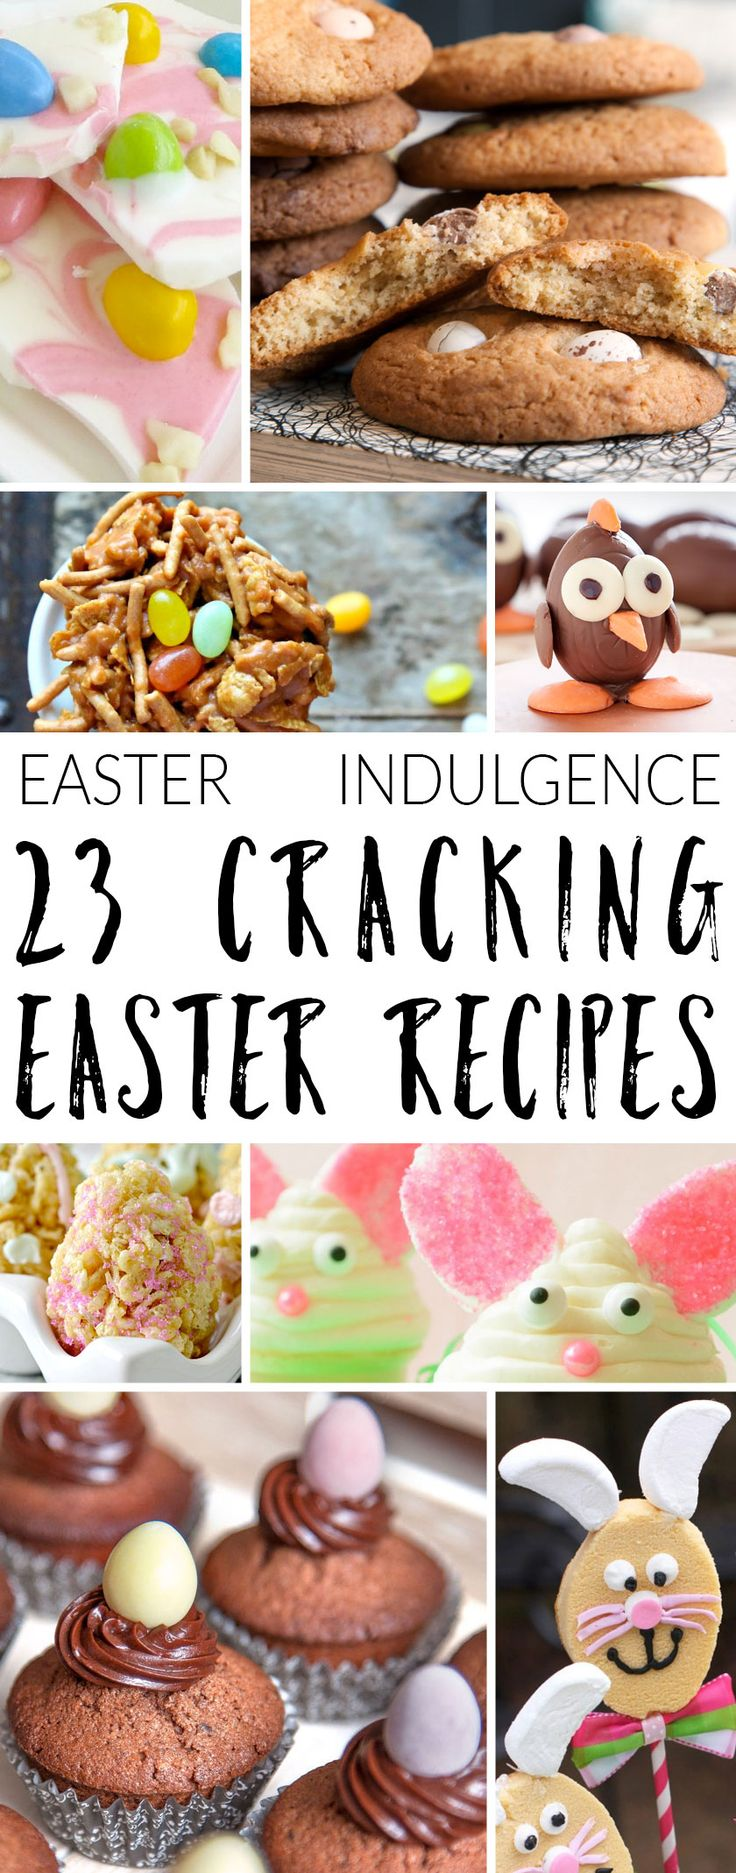 The long weekend is a great opportunity to get in the kitchen and whip up some deliciousness to fill your Easter table and put a smile on everyone's face.  I've done the hard work for you and rounded up all manner of amazing recipes, read on for Easter indulgence inspiration!